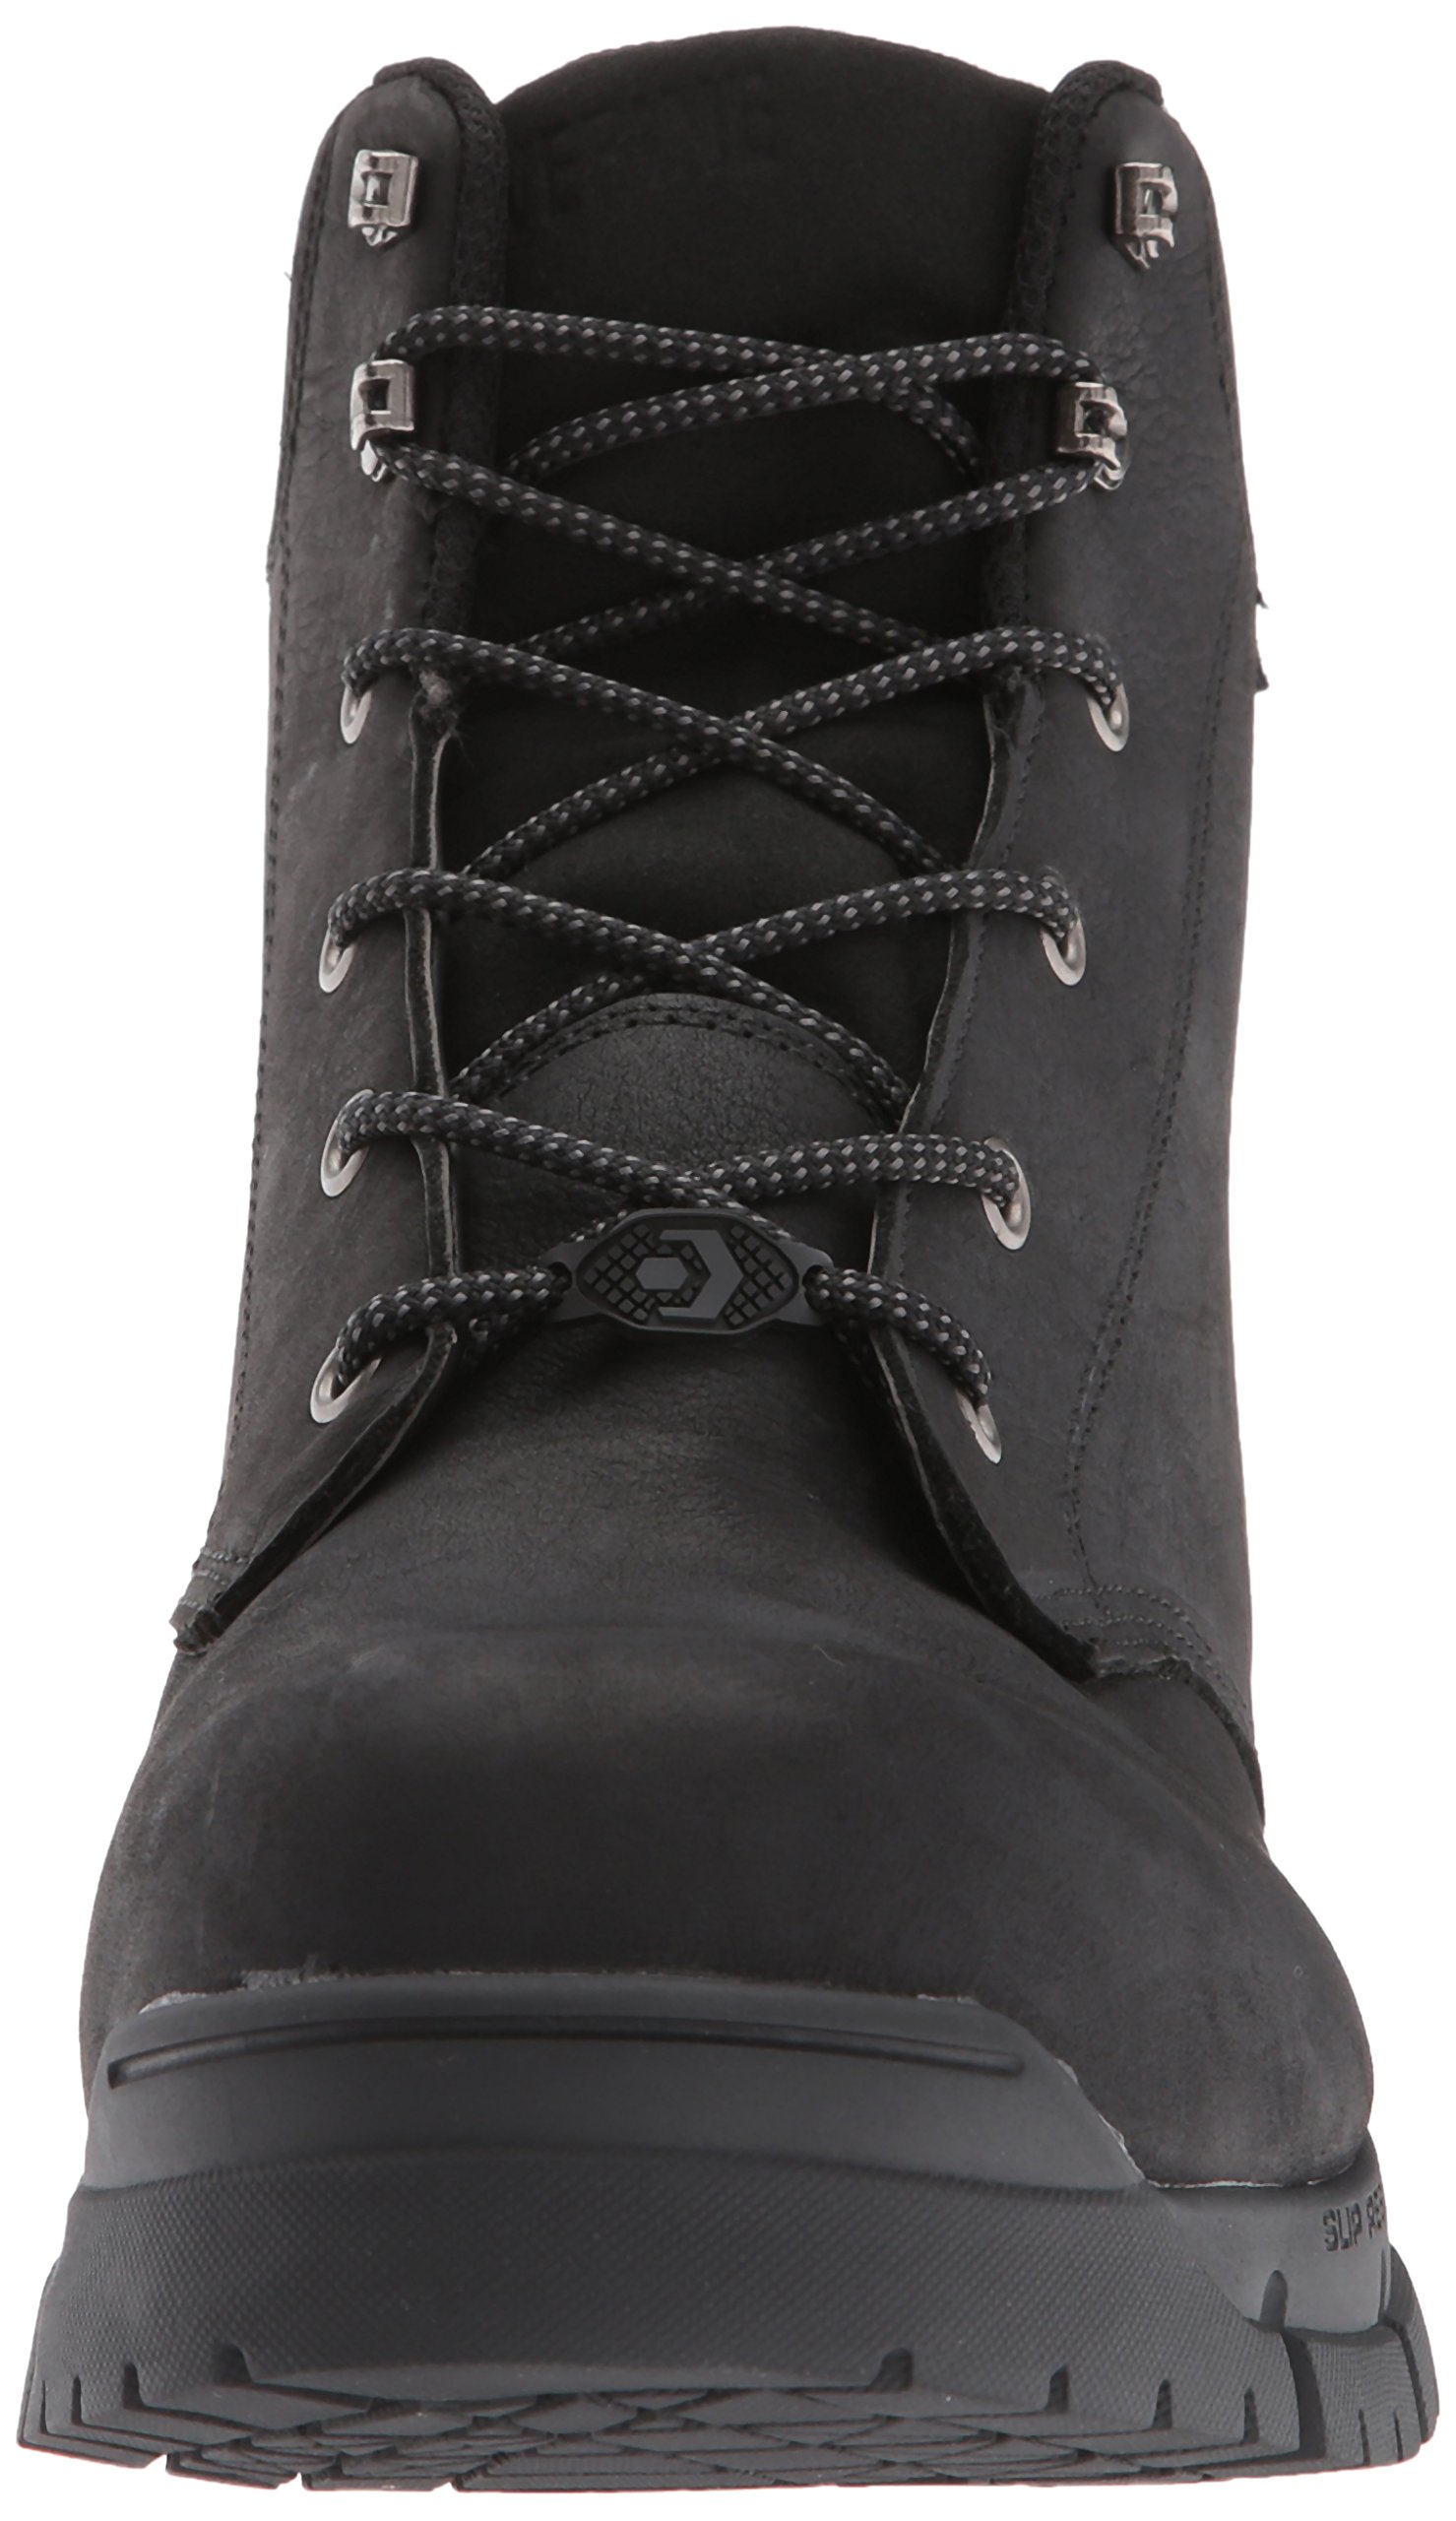 Wolverine Men's Mauler LX Composite Toe Waterproof Work Boot Black 7 W US by Wolverine (Image #4)